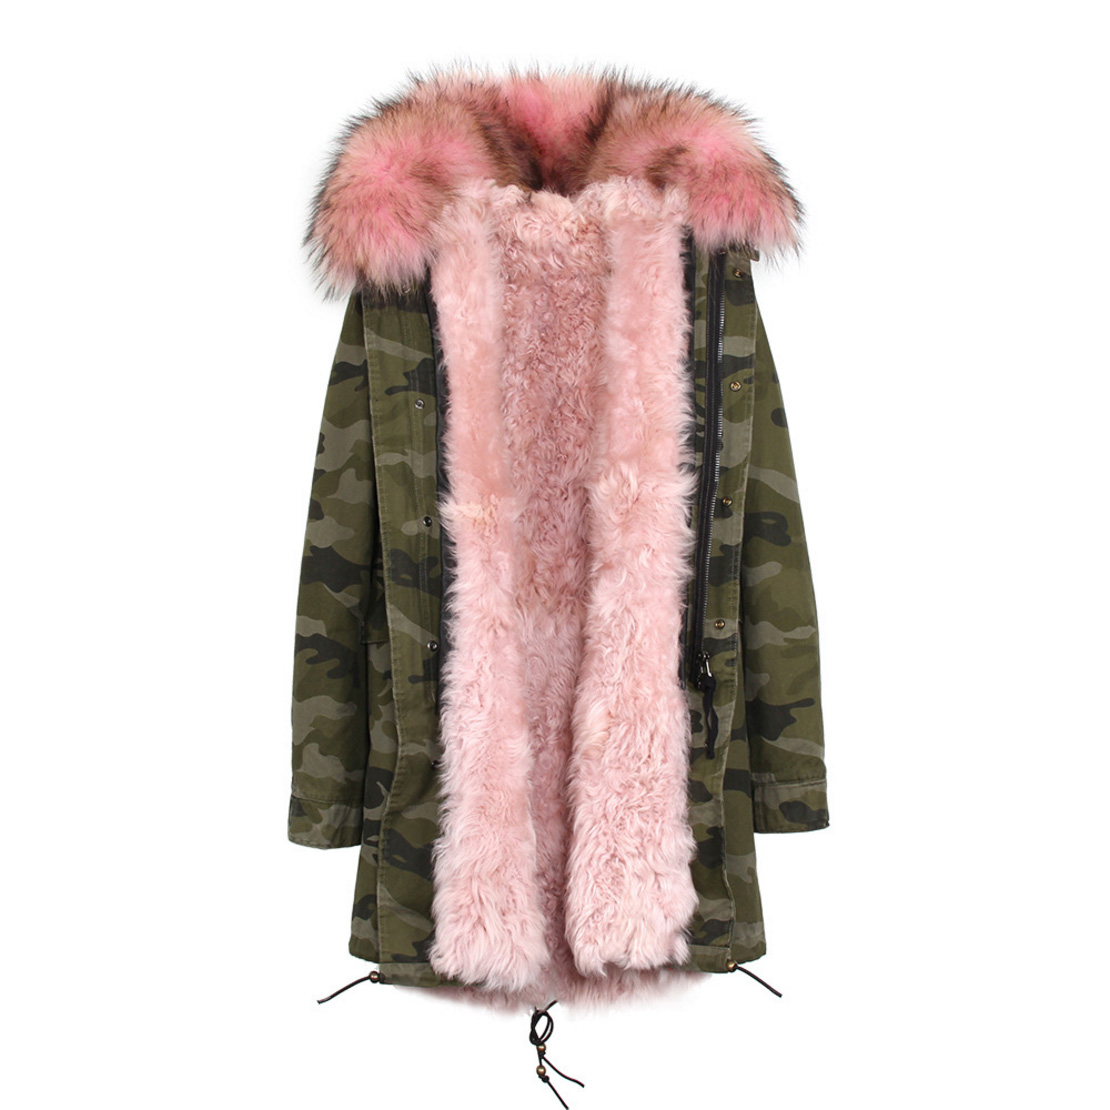 Raccoon Fur Trimmed Hooded Parka with Detachable Lamb Fur Liner 132-16